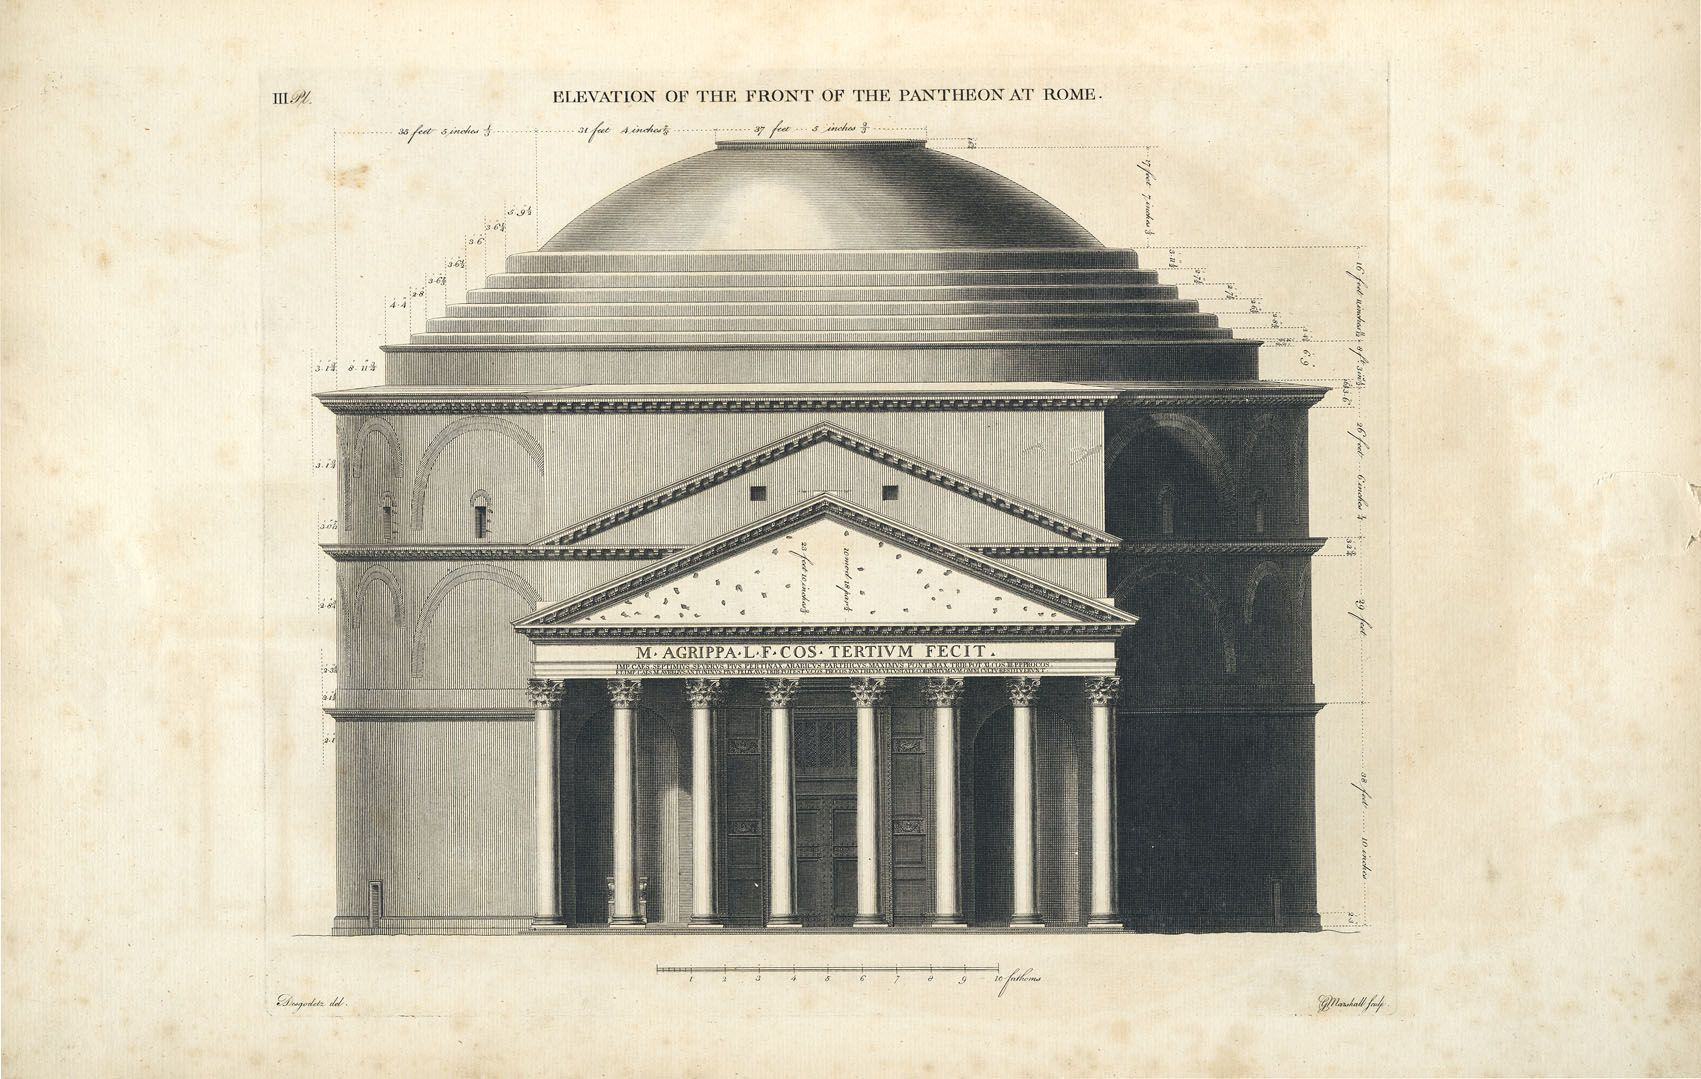 Front Elevation Antiques : Elevation front pantheon rome italy section